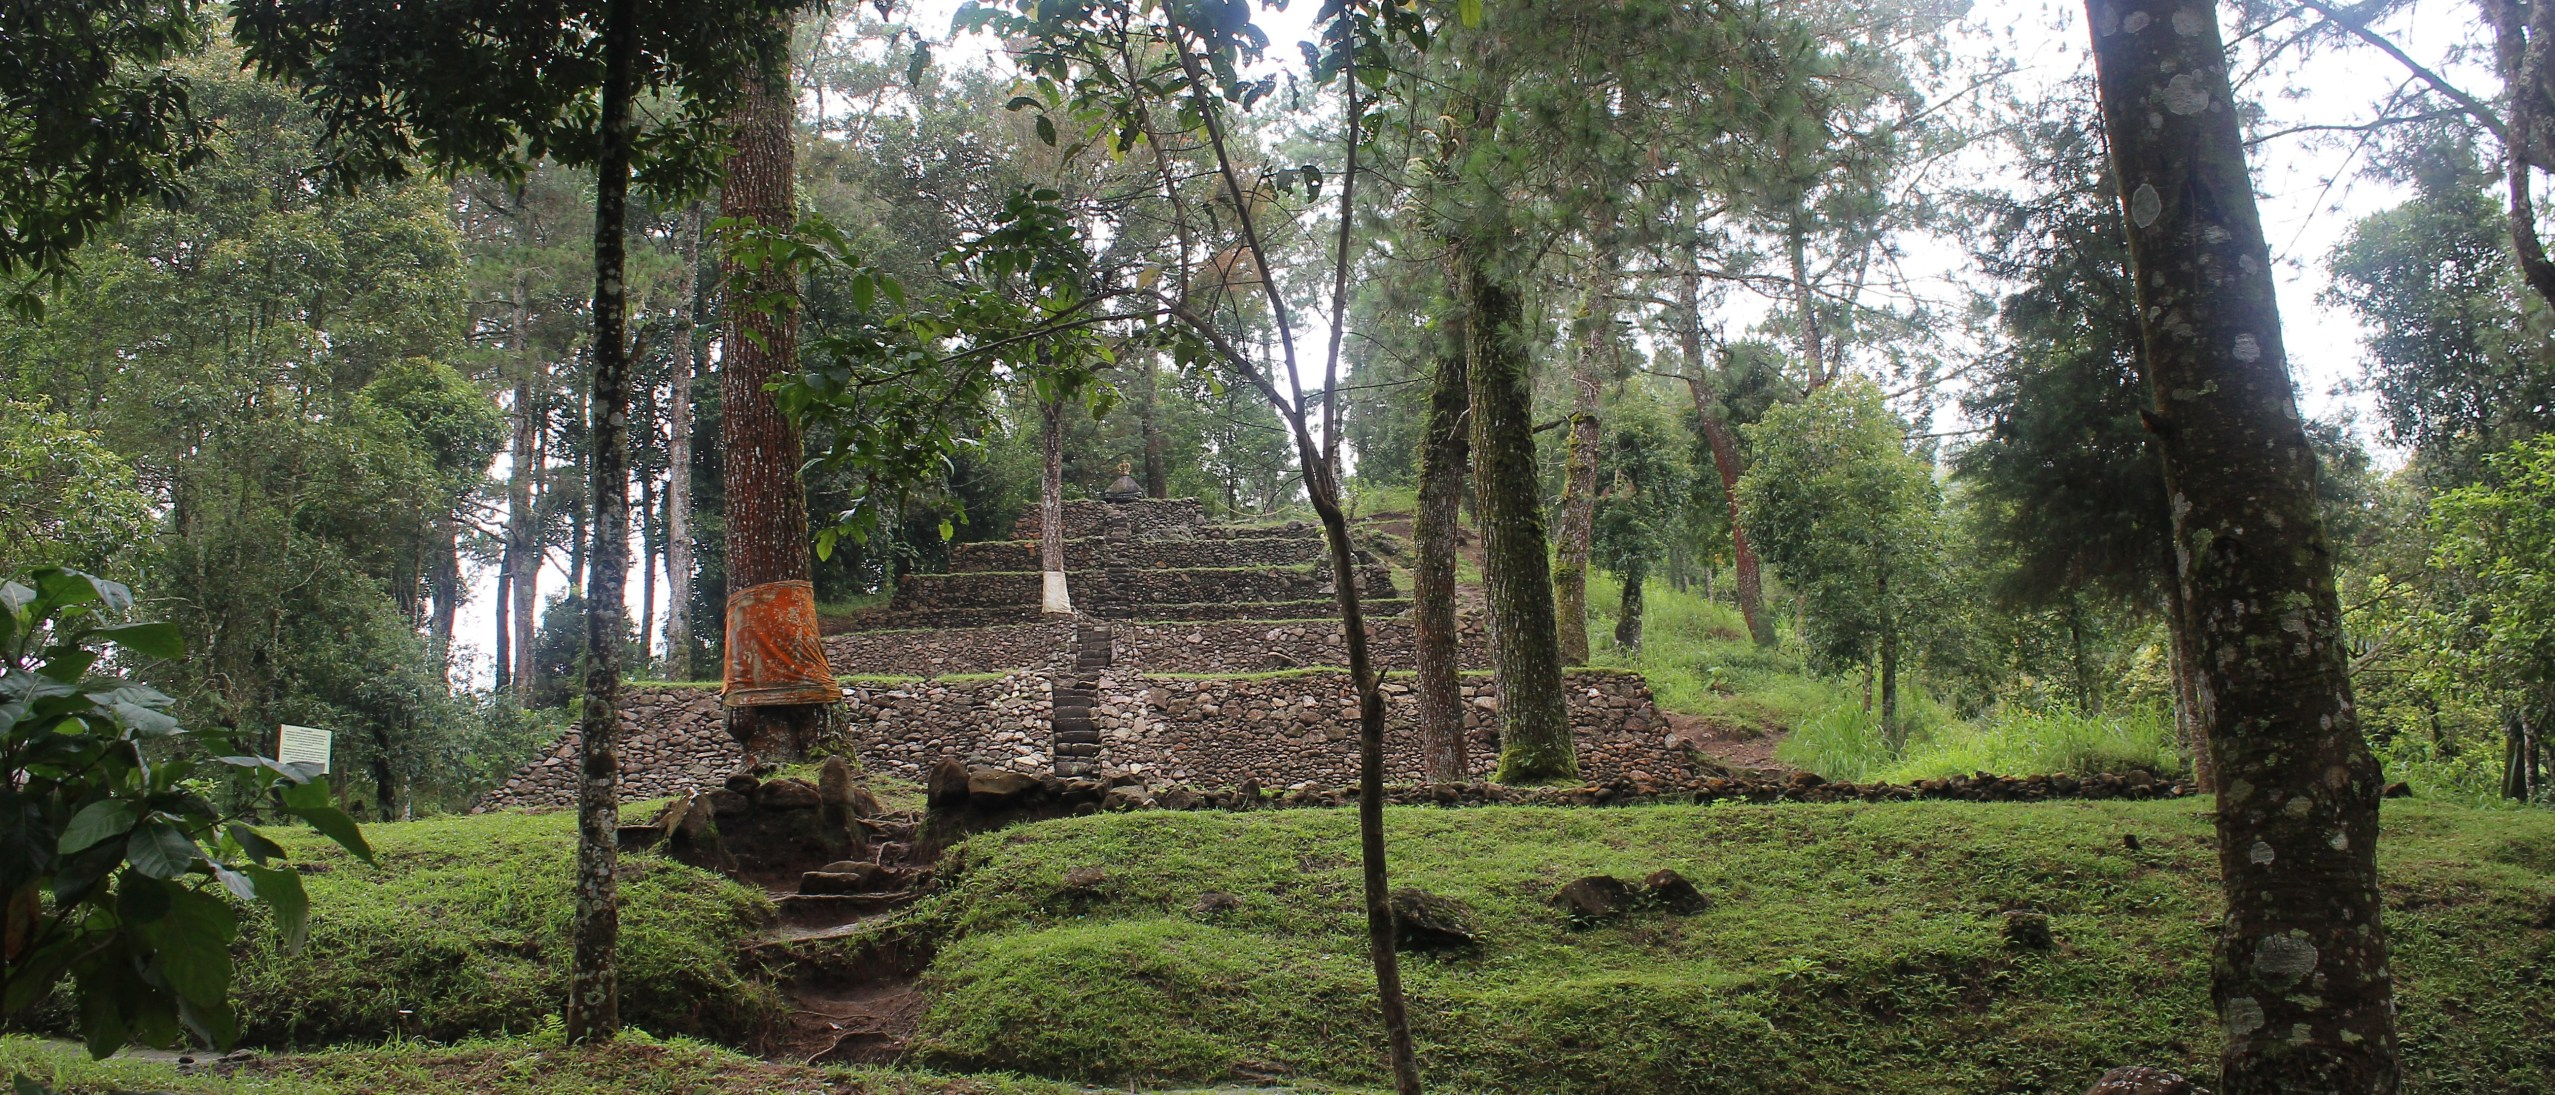 Terraced temple built into lush green mountainside, a slender tree with orange cloth around it in the foreground